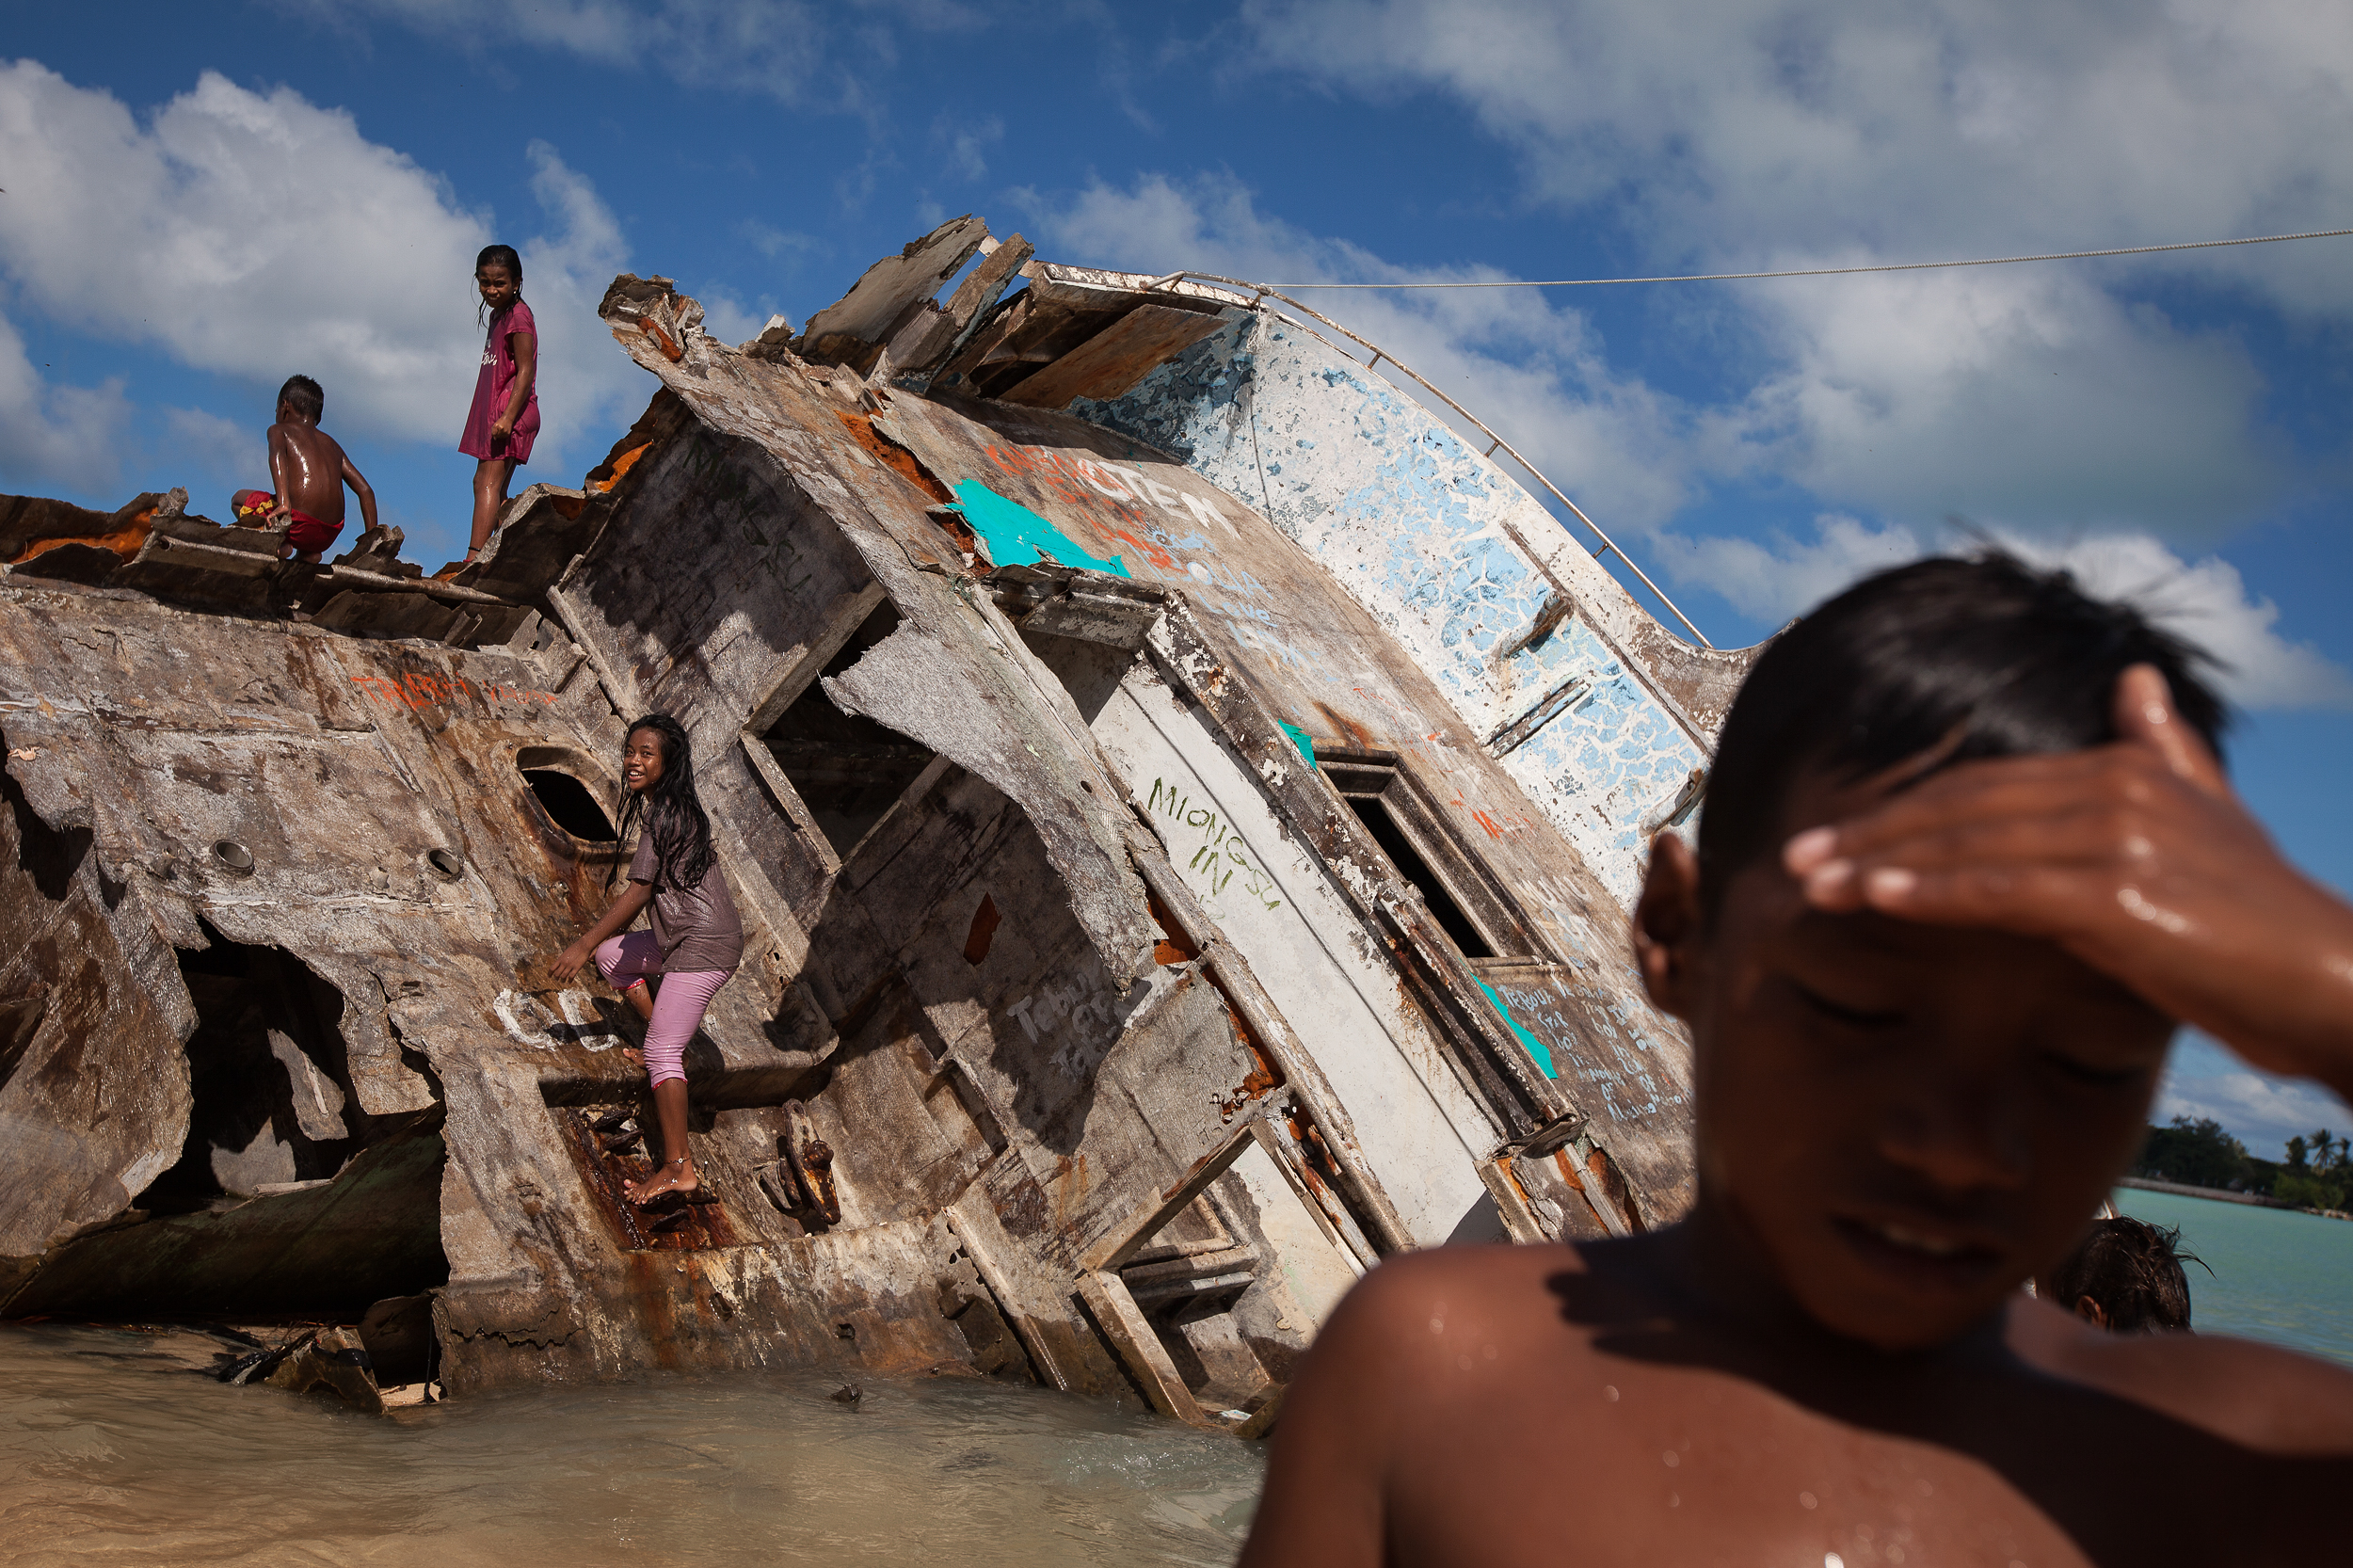 A boat washed ashore on Red Beach during a storm in 2013 now serves as play equipment for the local Betio kids. Betio is the most crowded and densely populated slum area in South Tarawa, with serious pollution and fresh water problems.